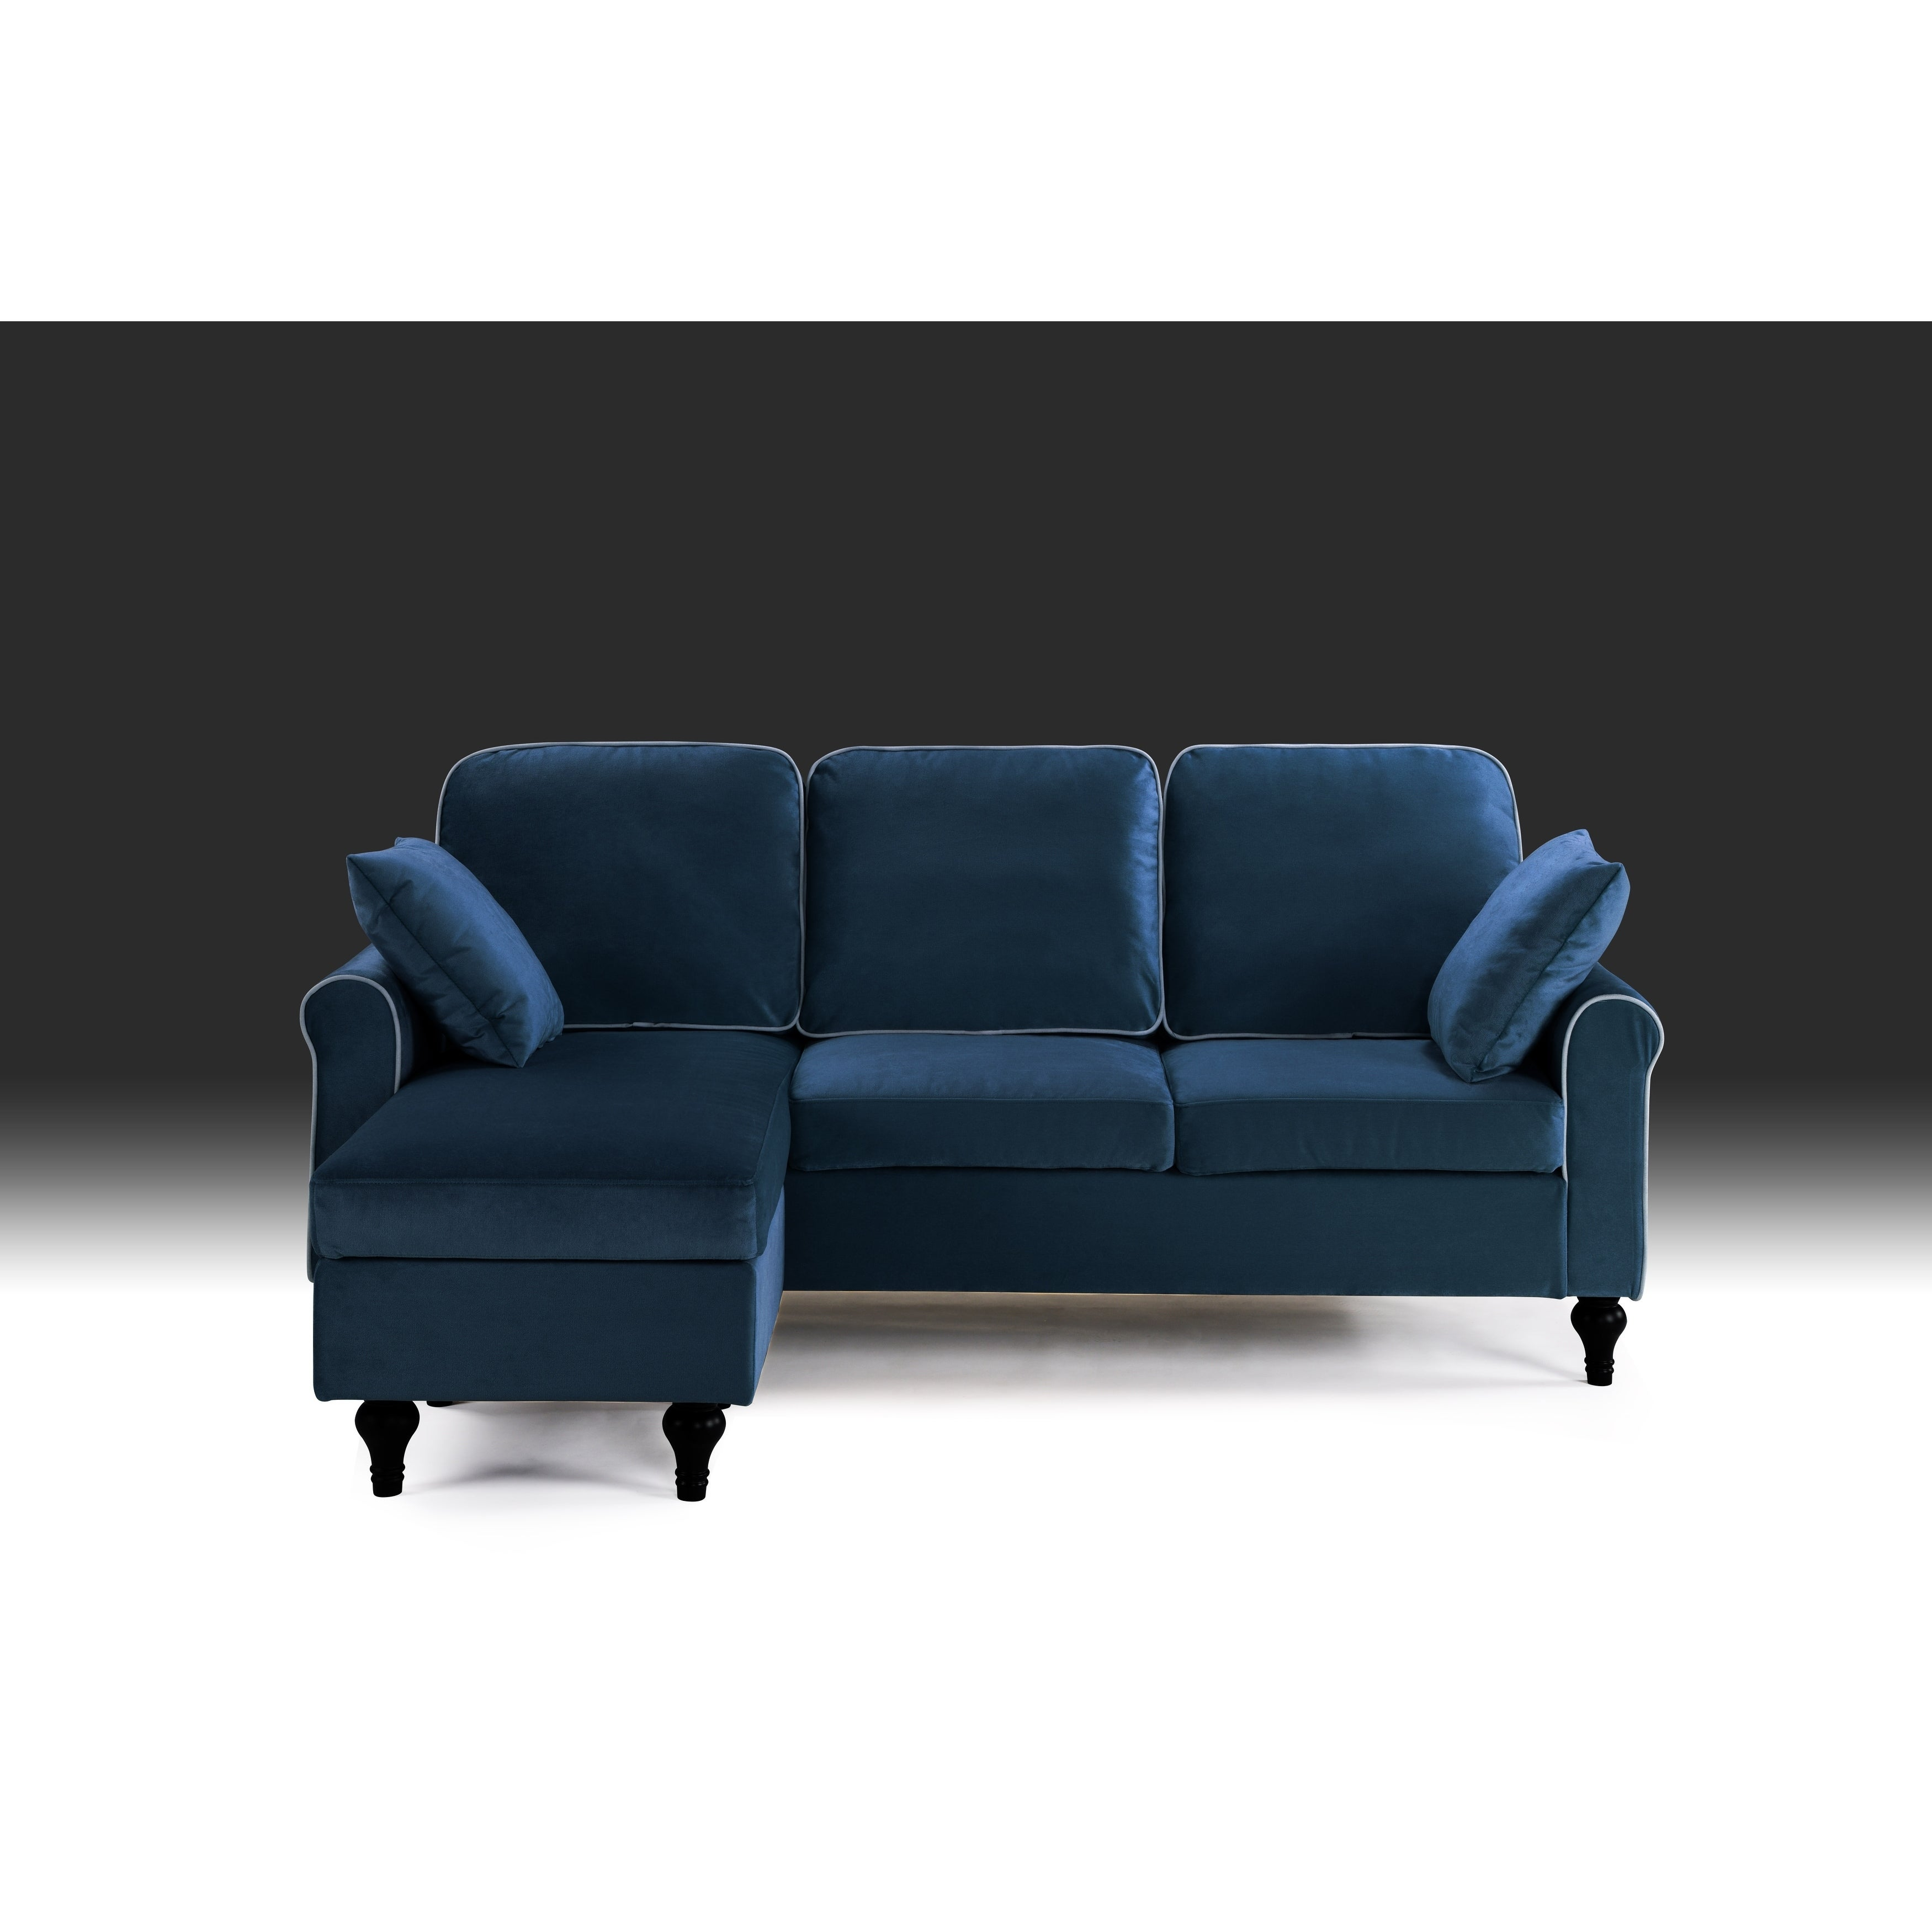 Astonishing Traditional Small Space Velvet Sectional Sofa With Reversible Chaise Machost Co Dining Chair Design Ideas Machostcouk